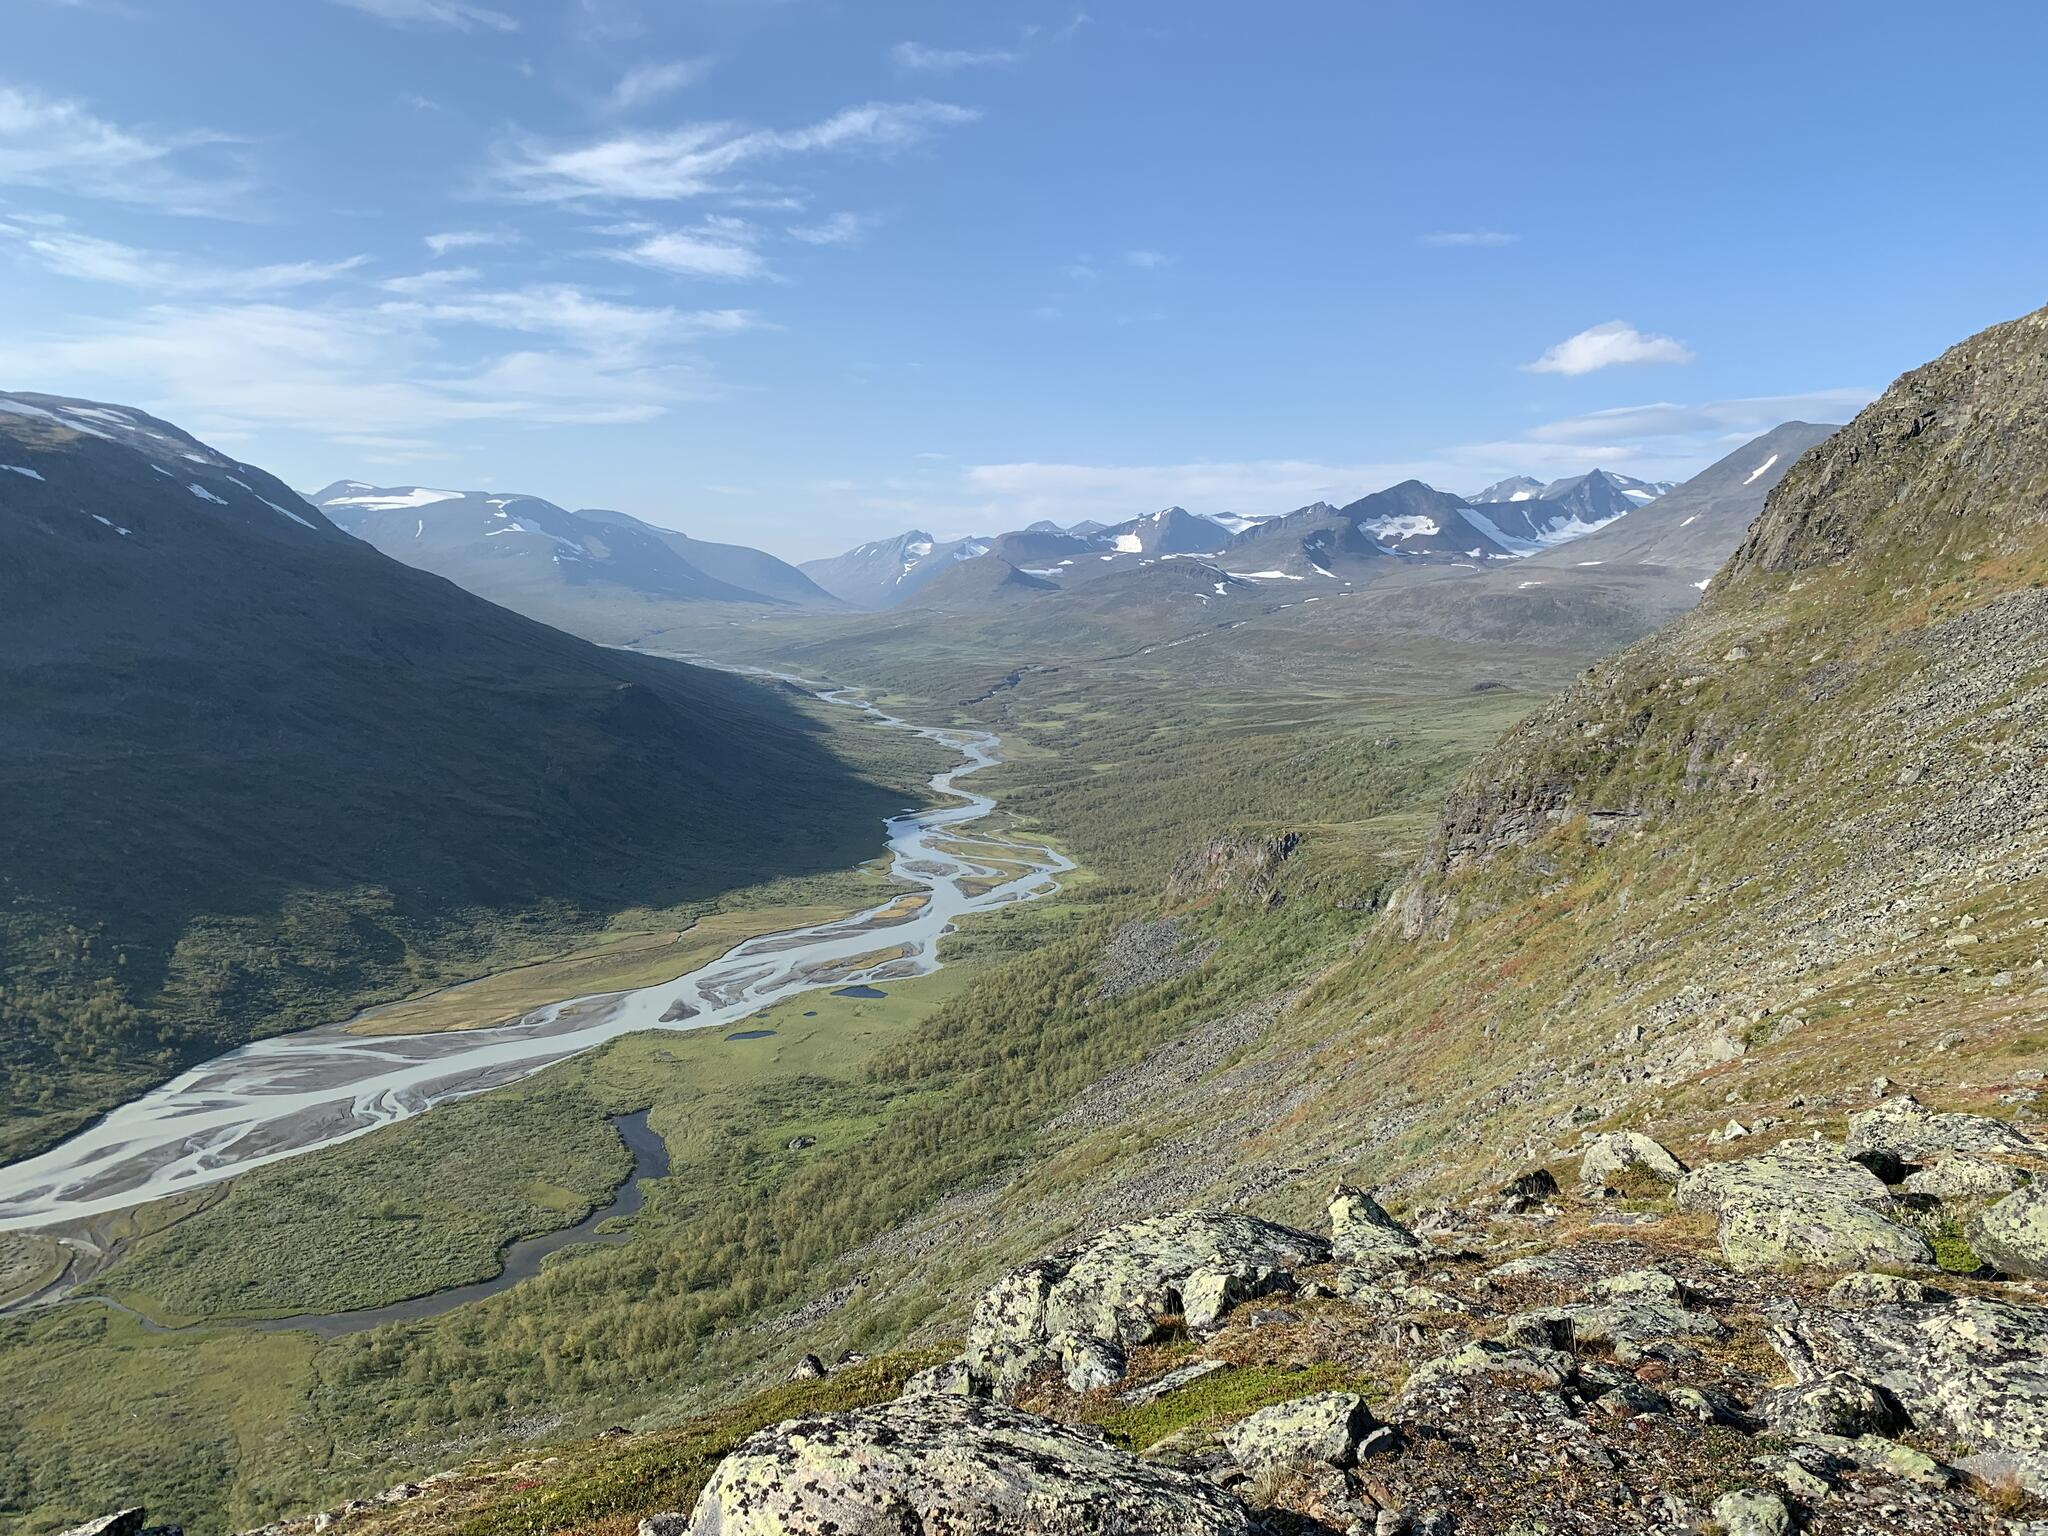 The upper Rapadalen and Skarja seen from Snavvavagge.  The path passes just below the cliff on the right.